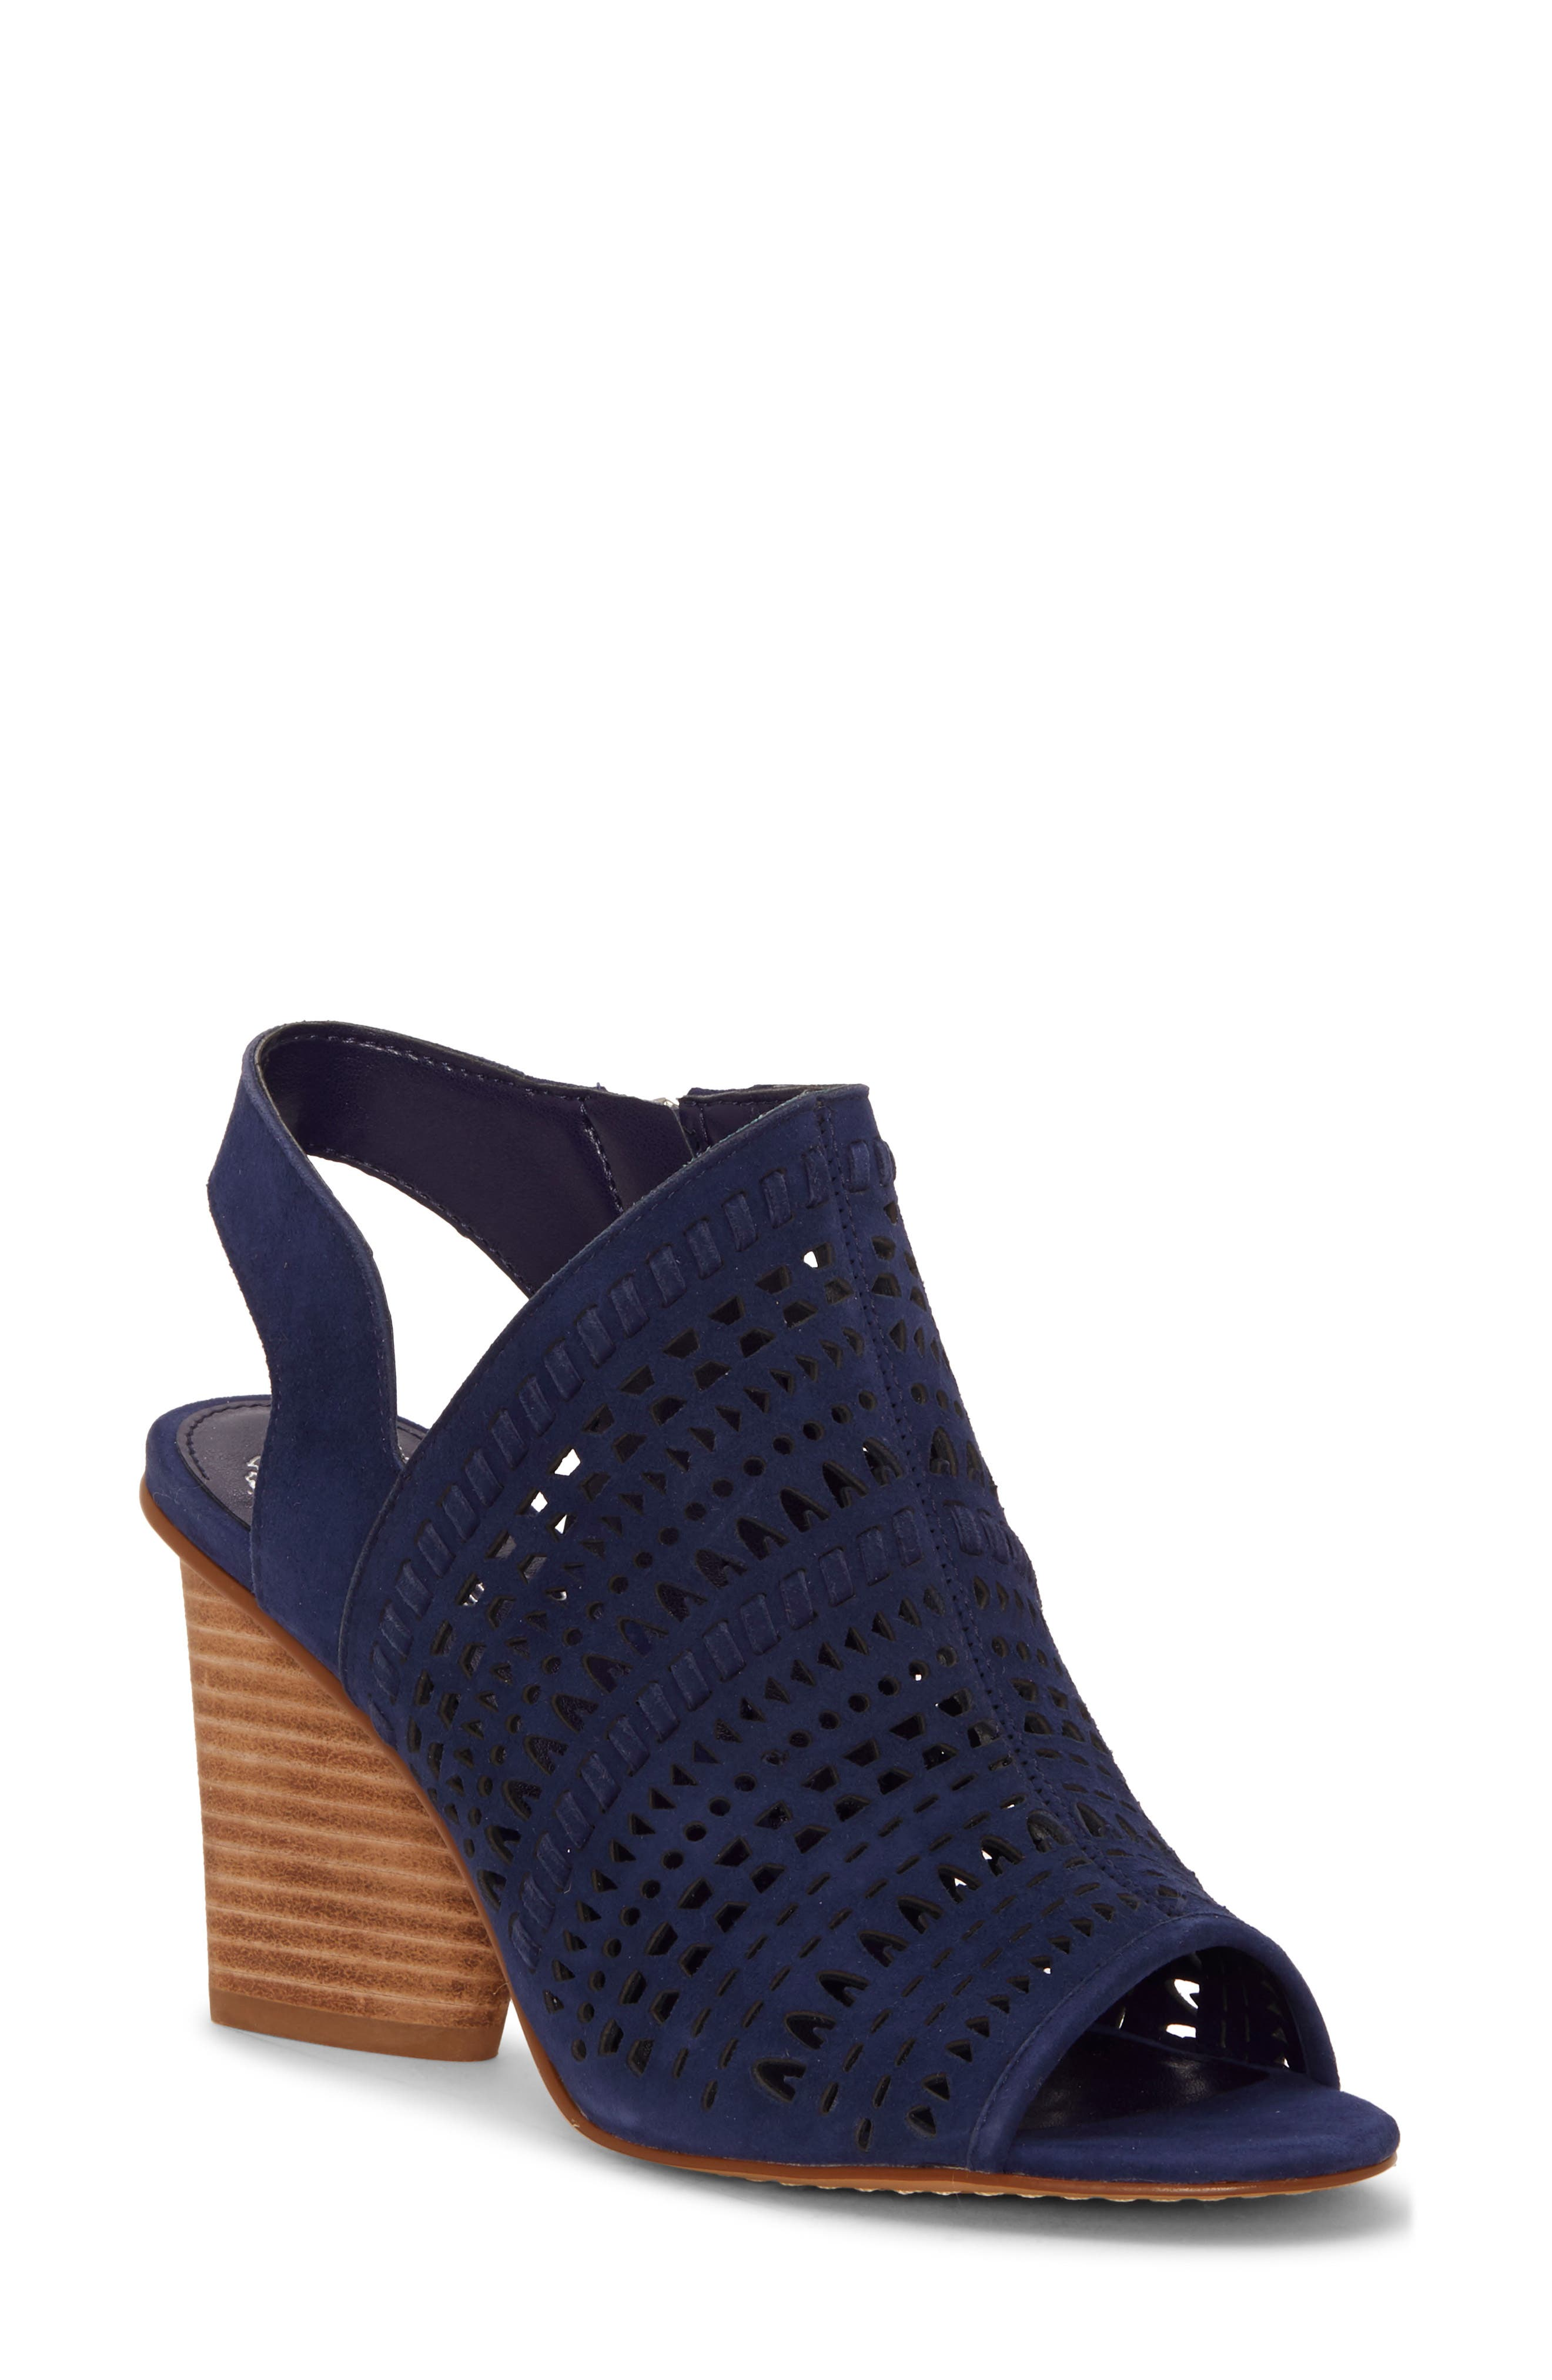 Vince Camuto Derechie Perforated Shield Sandal, Blue